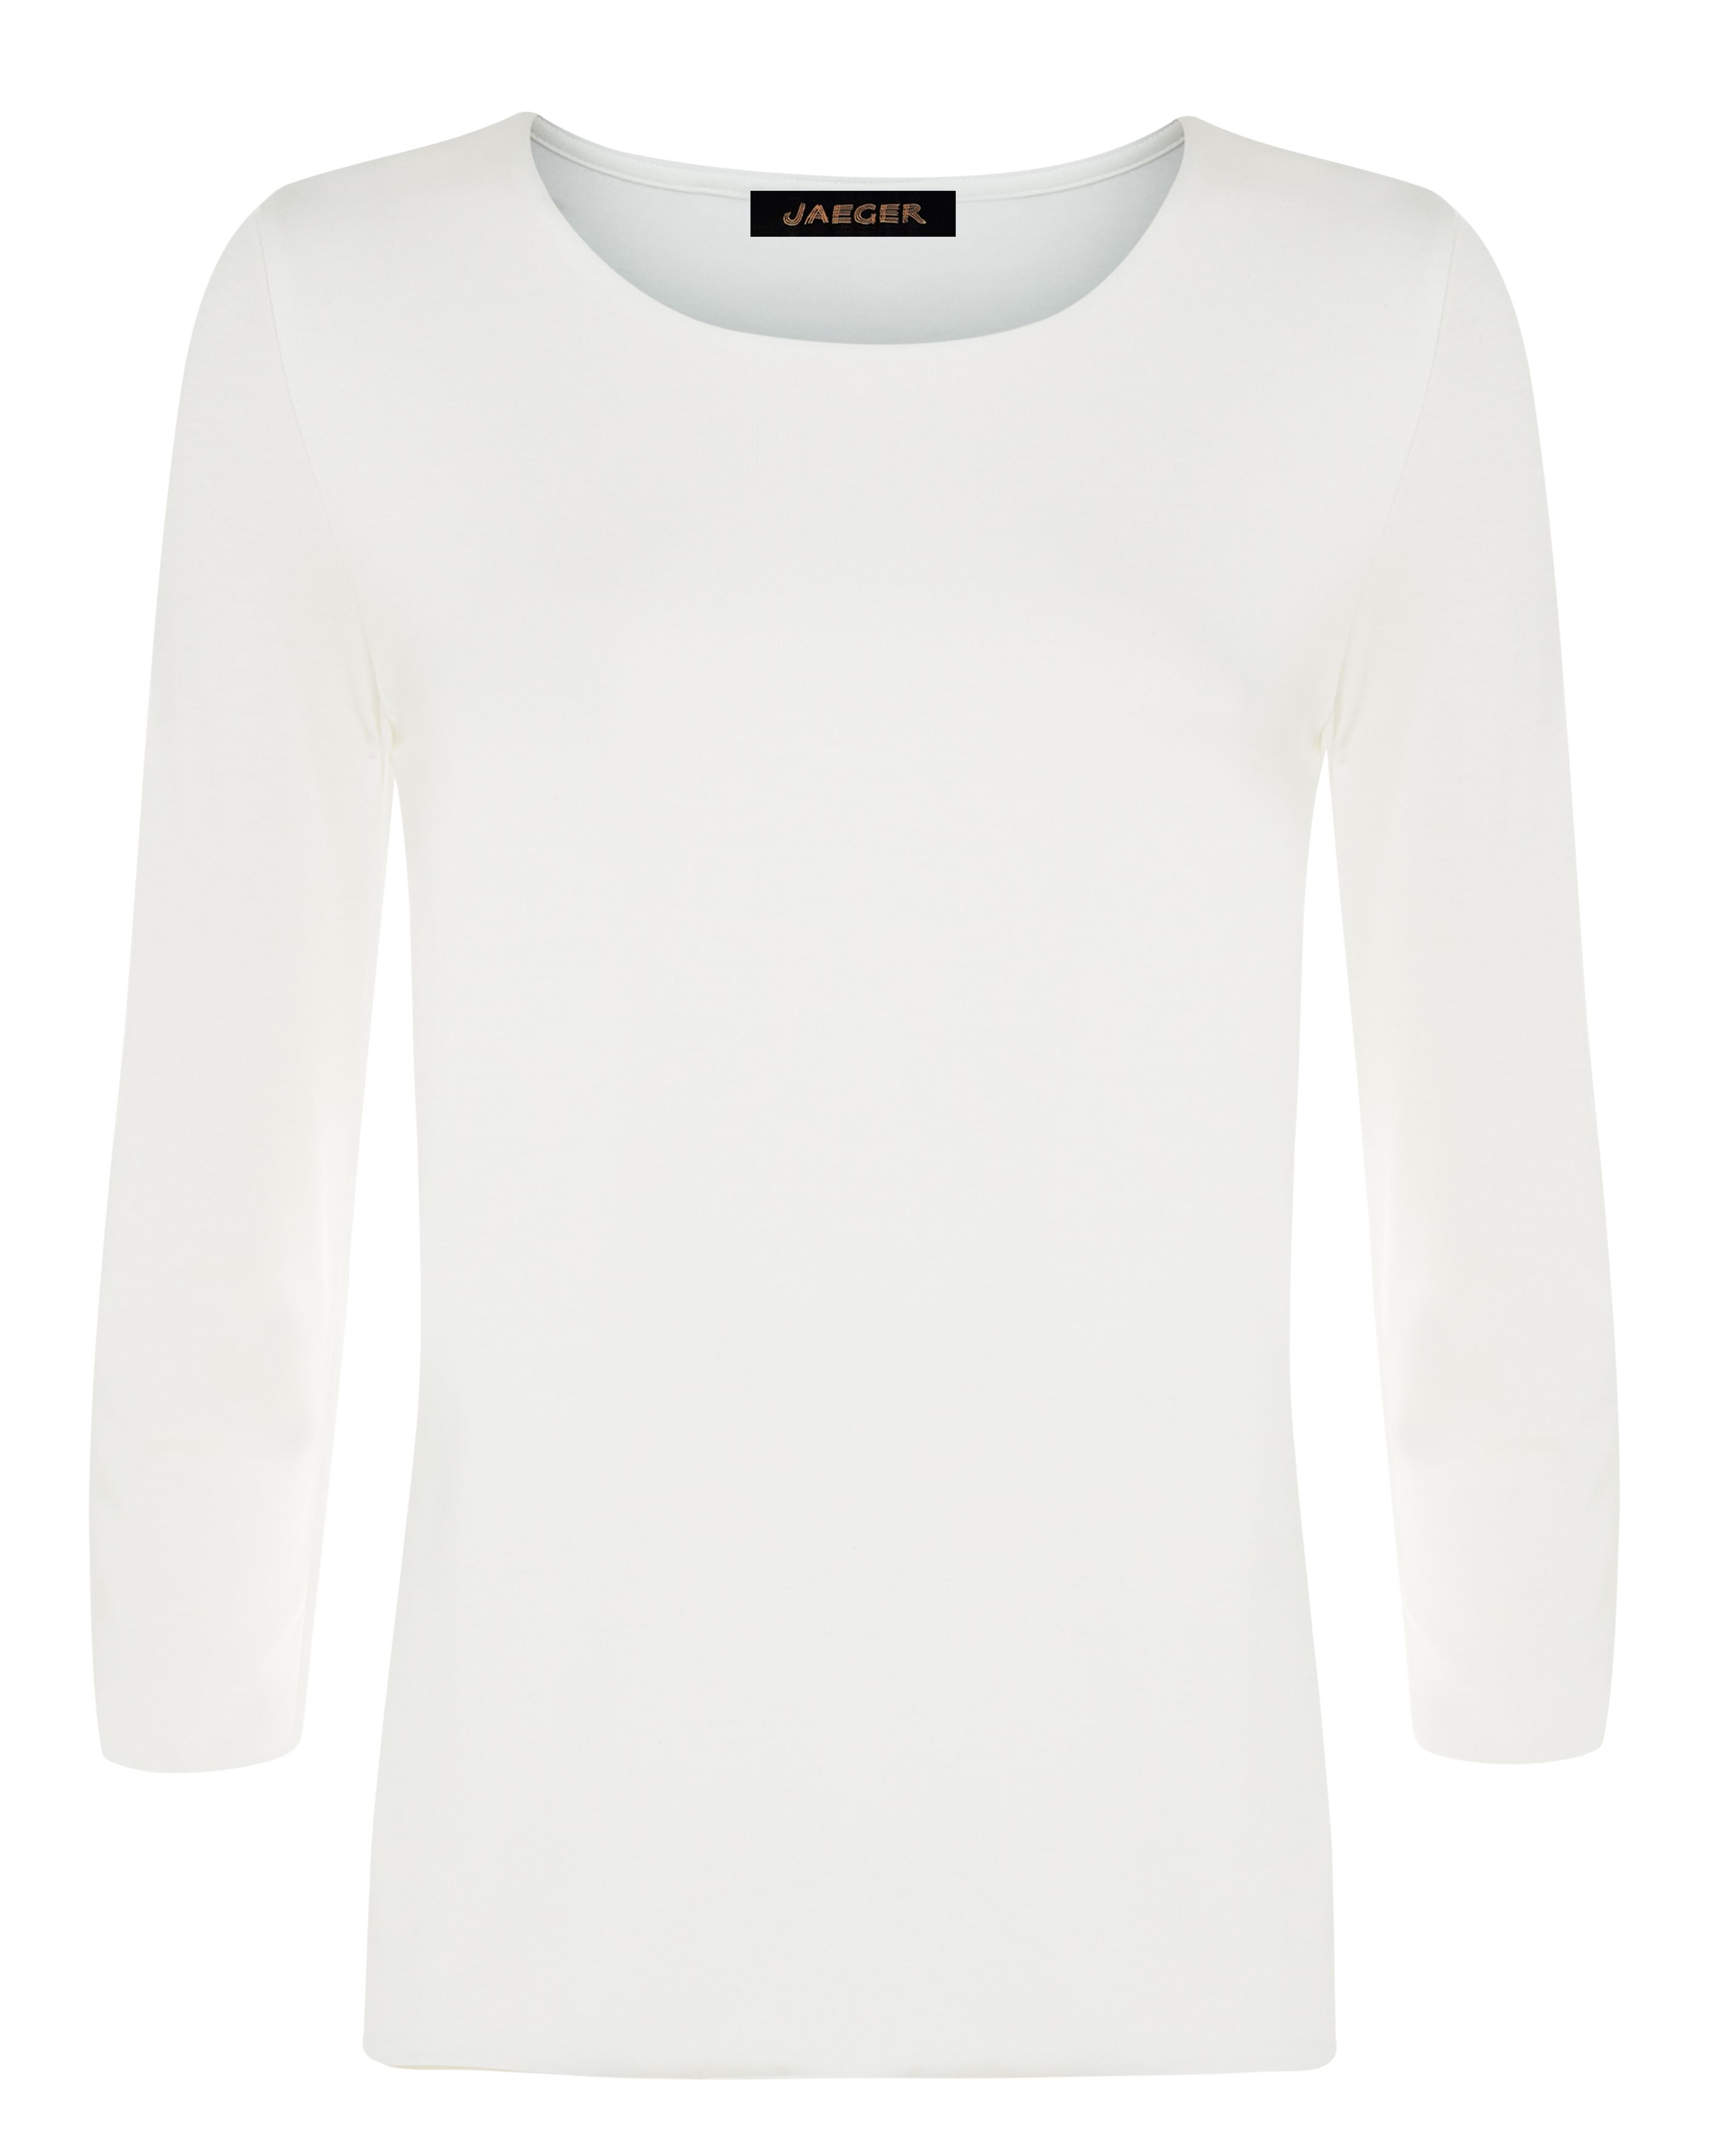 Jaeger Essential Jersey Top, White